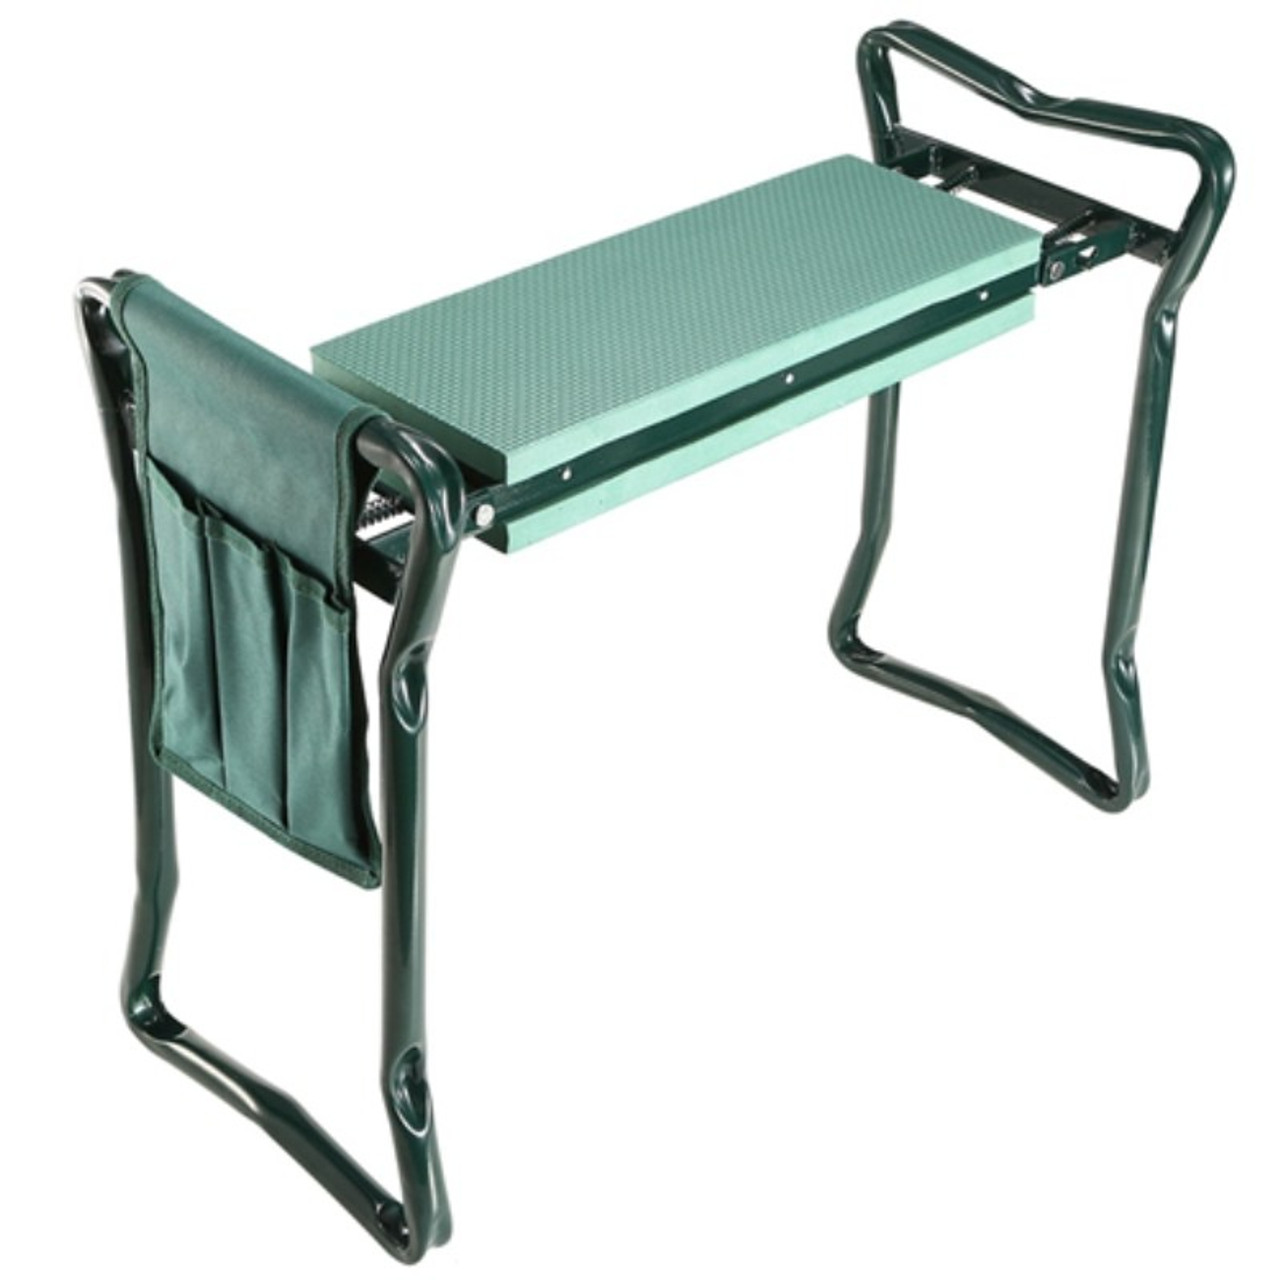 Foldable Garden Kneeler Seat, EVA Padded Bench, Stool with Tool Pouch